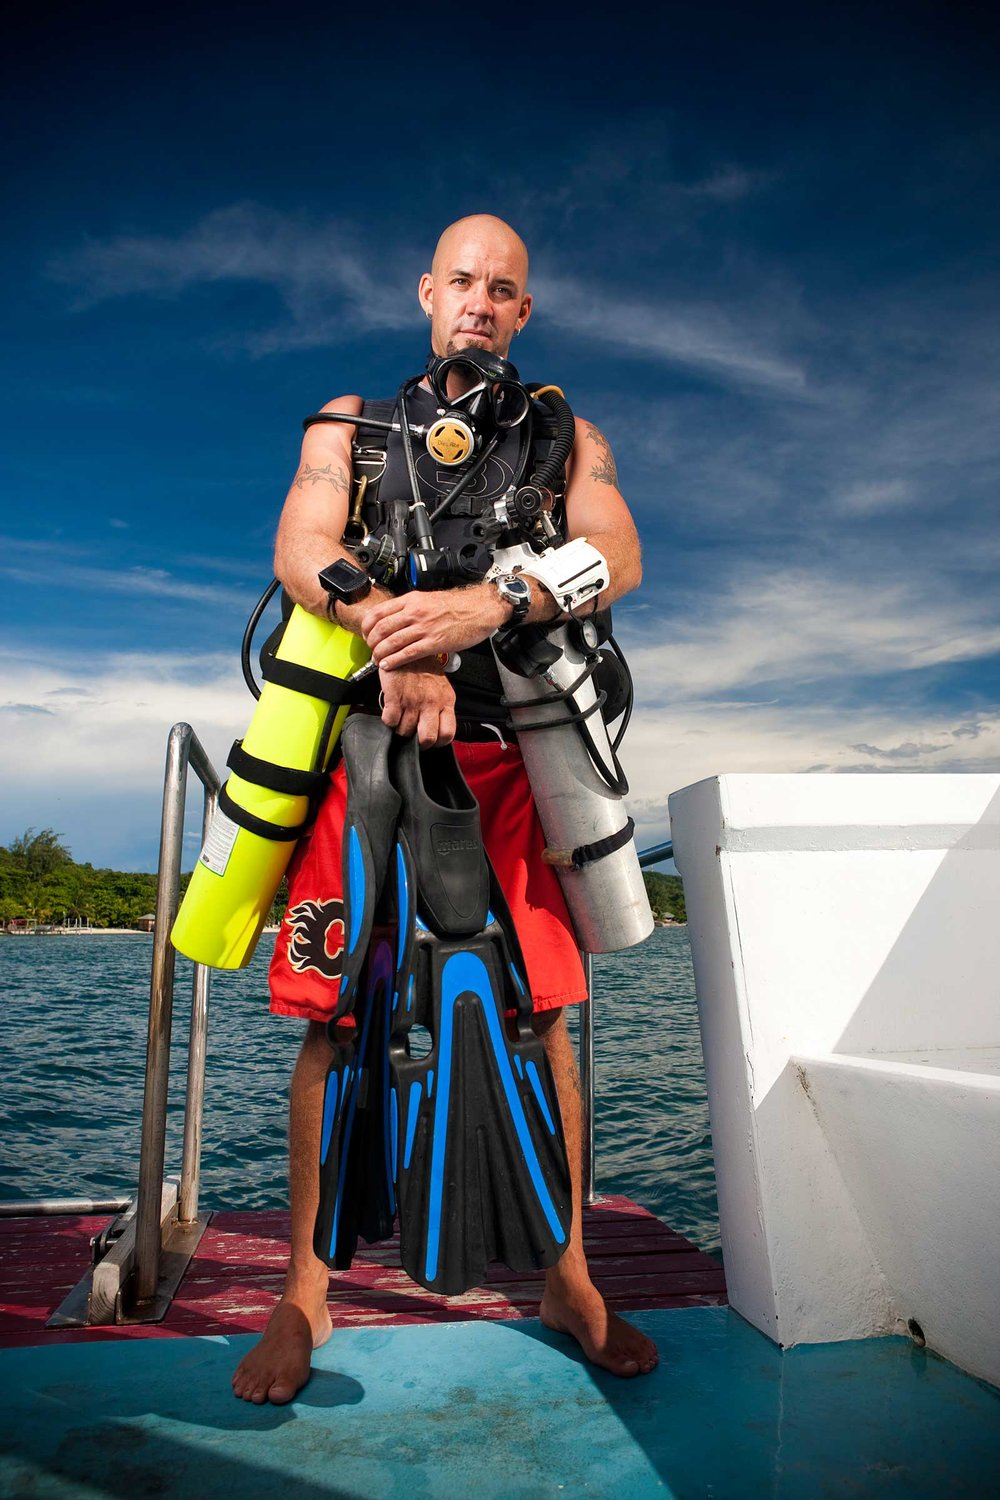 sidemount instructor monty graham